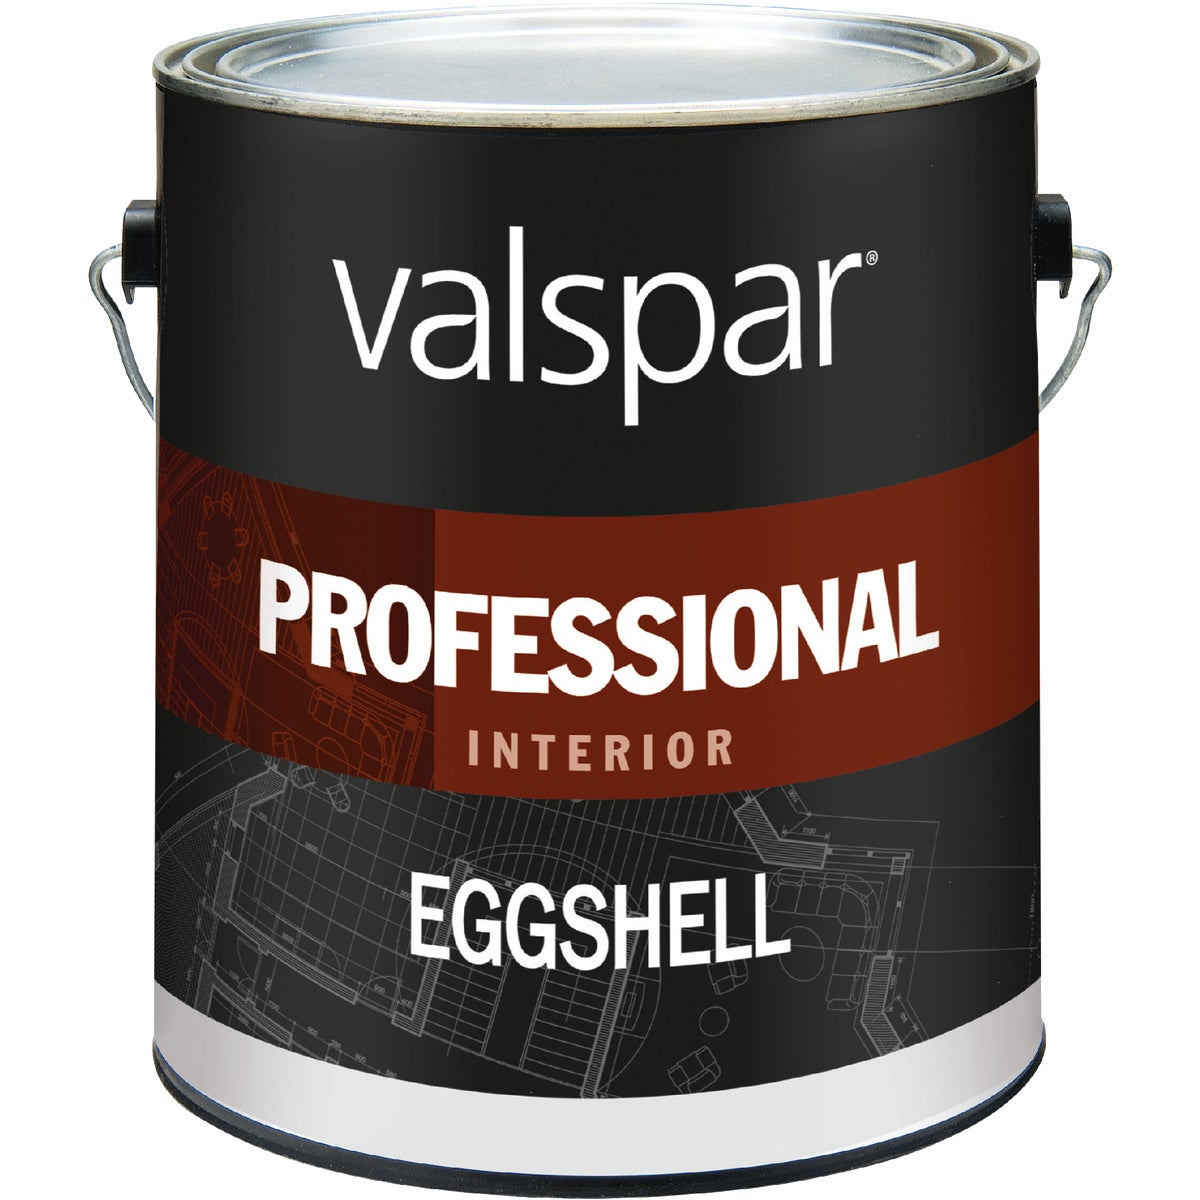 INT EGG LIGHT BASE PAINT - 045.0011811.007 by Valspar Corp